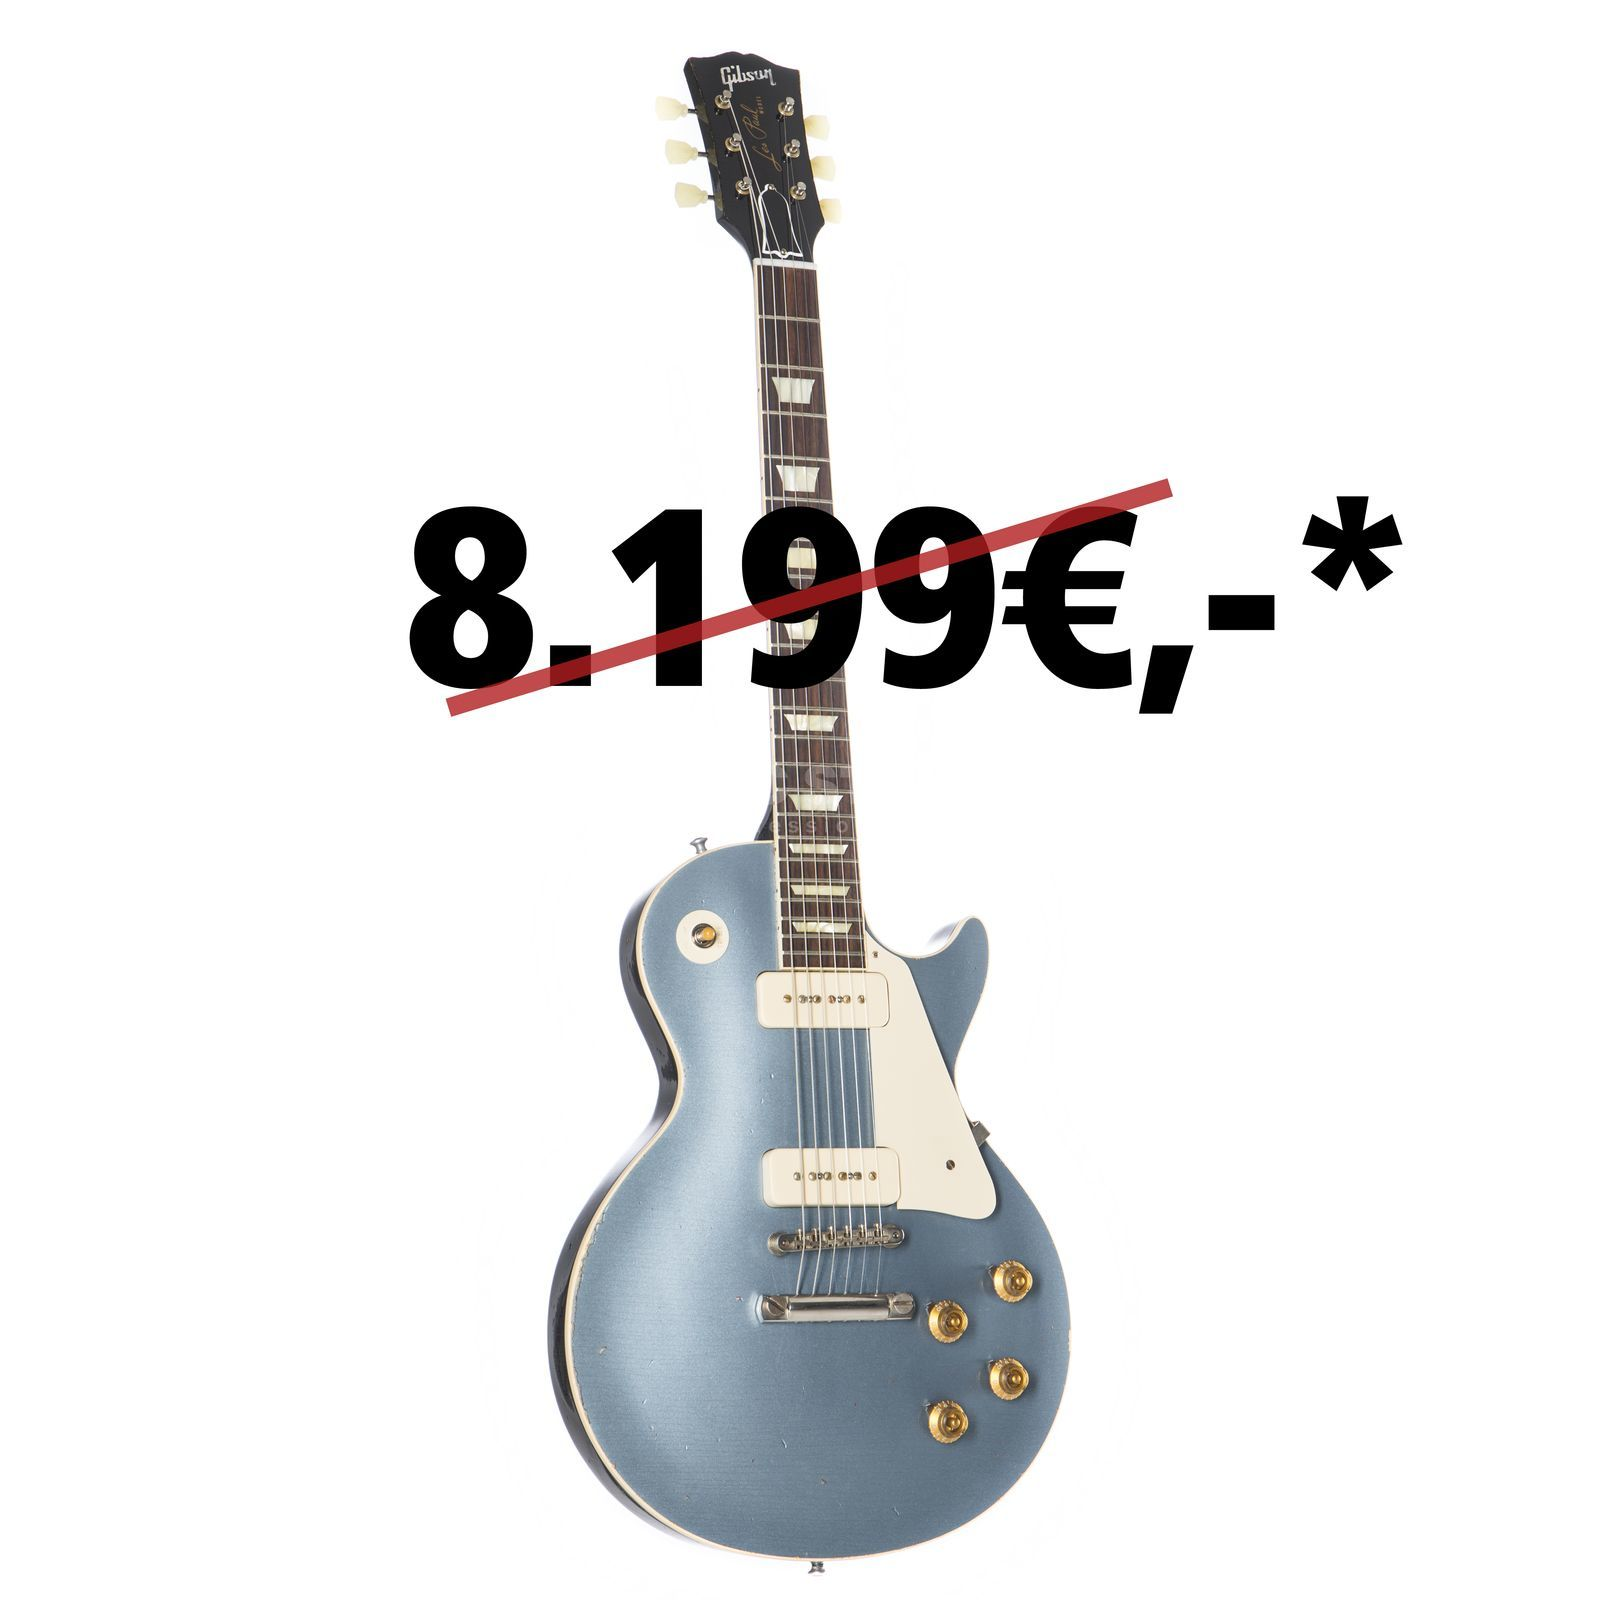 Gibson 1956 Les Paul Reissue Heavy Aged Pelham Blue #64316 Product Image